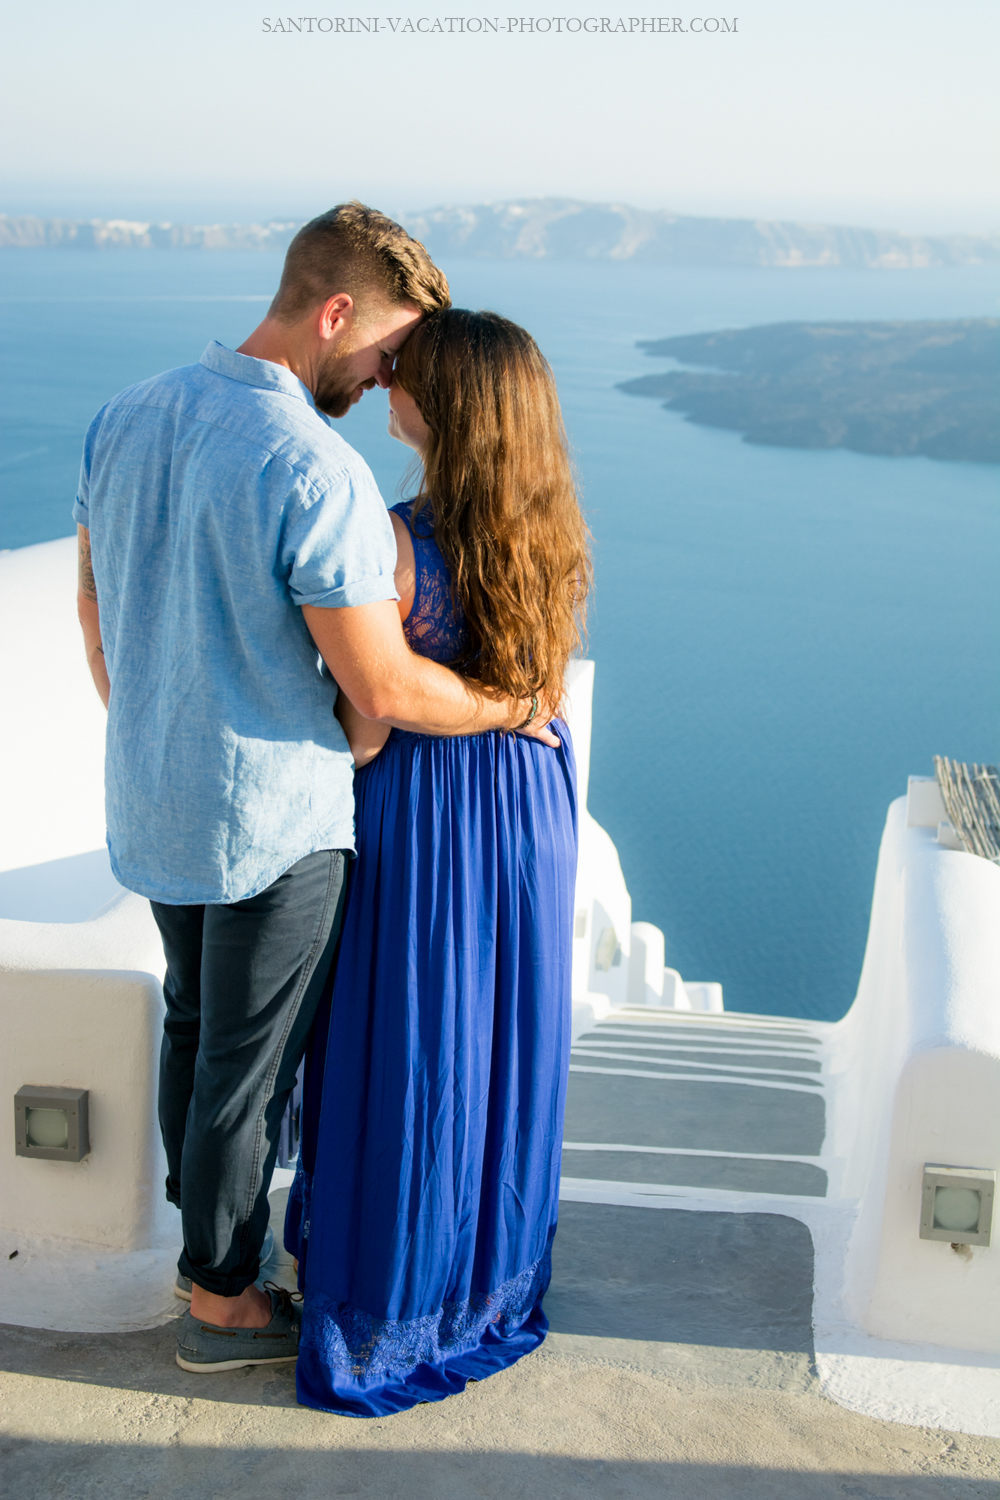 Destination-honeymoon-photo-session-Santorini-009